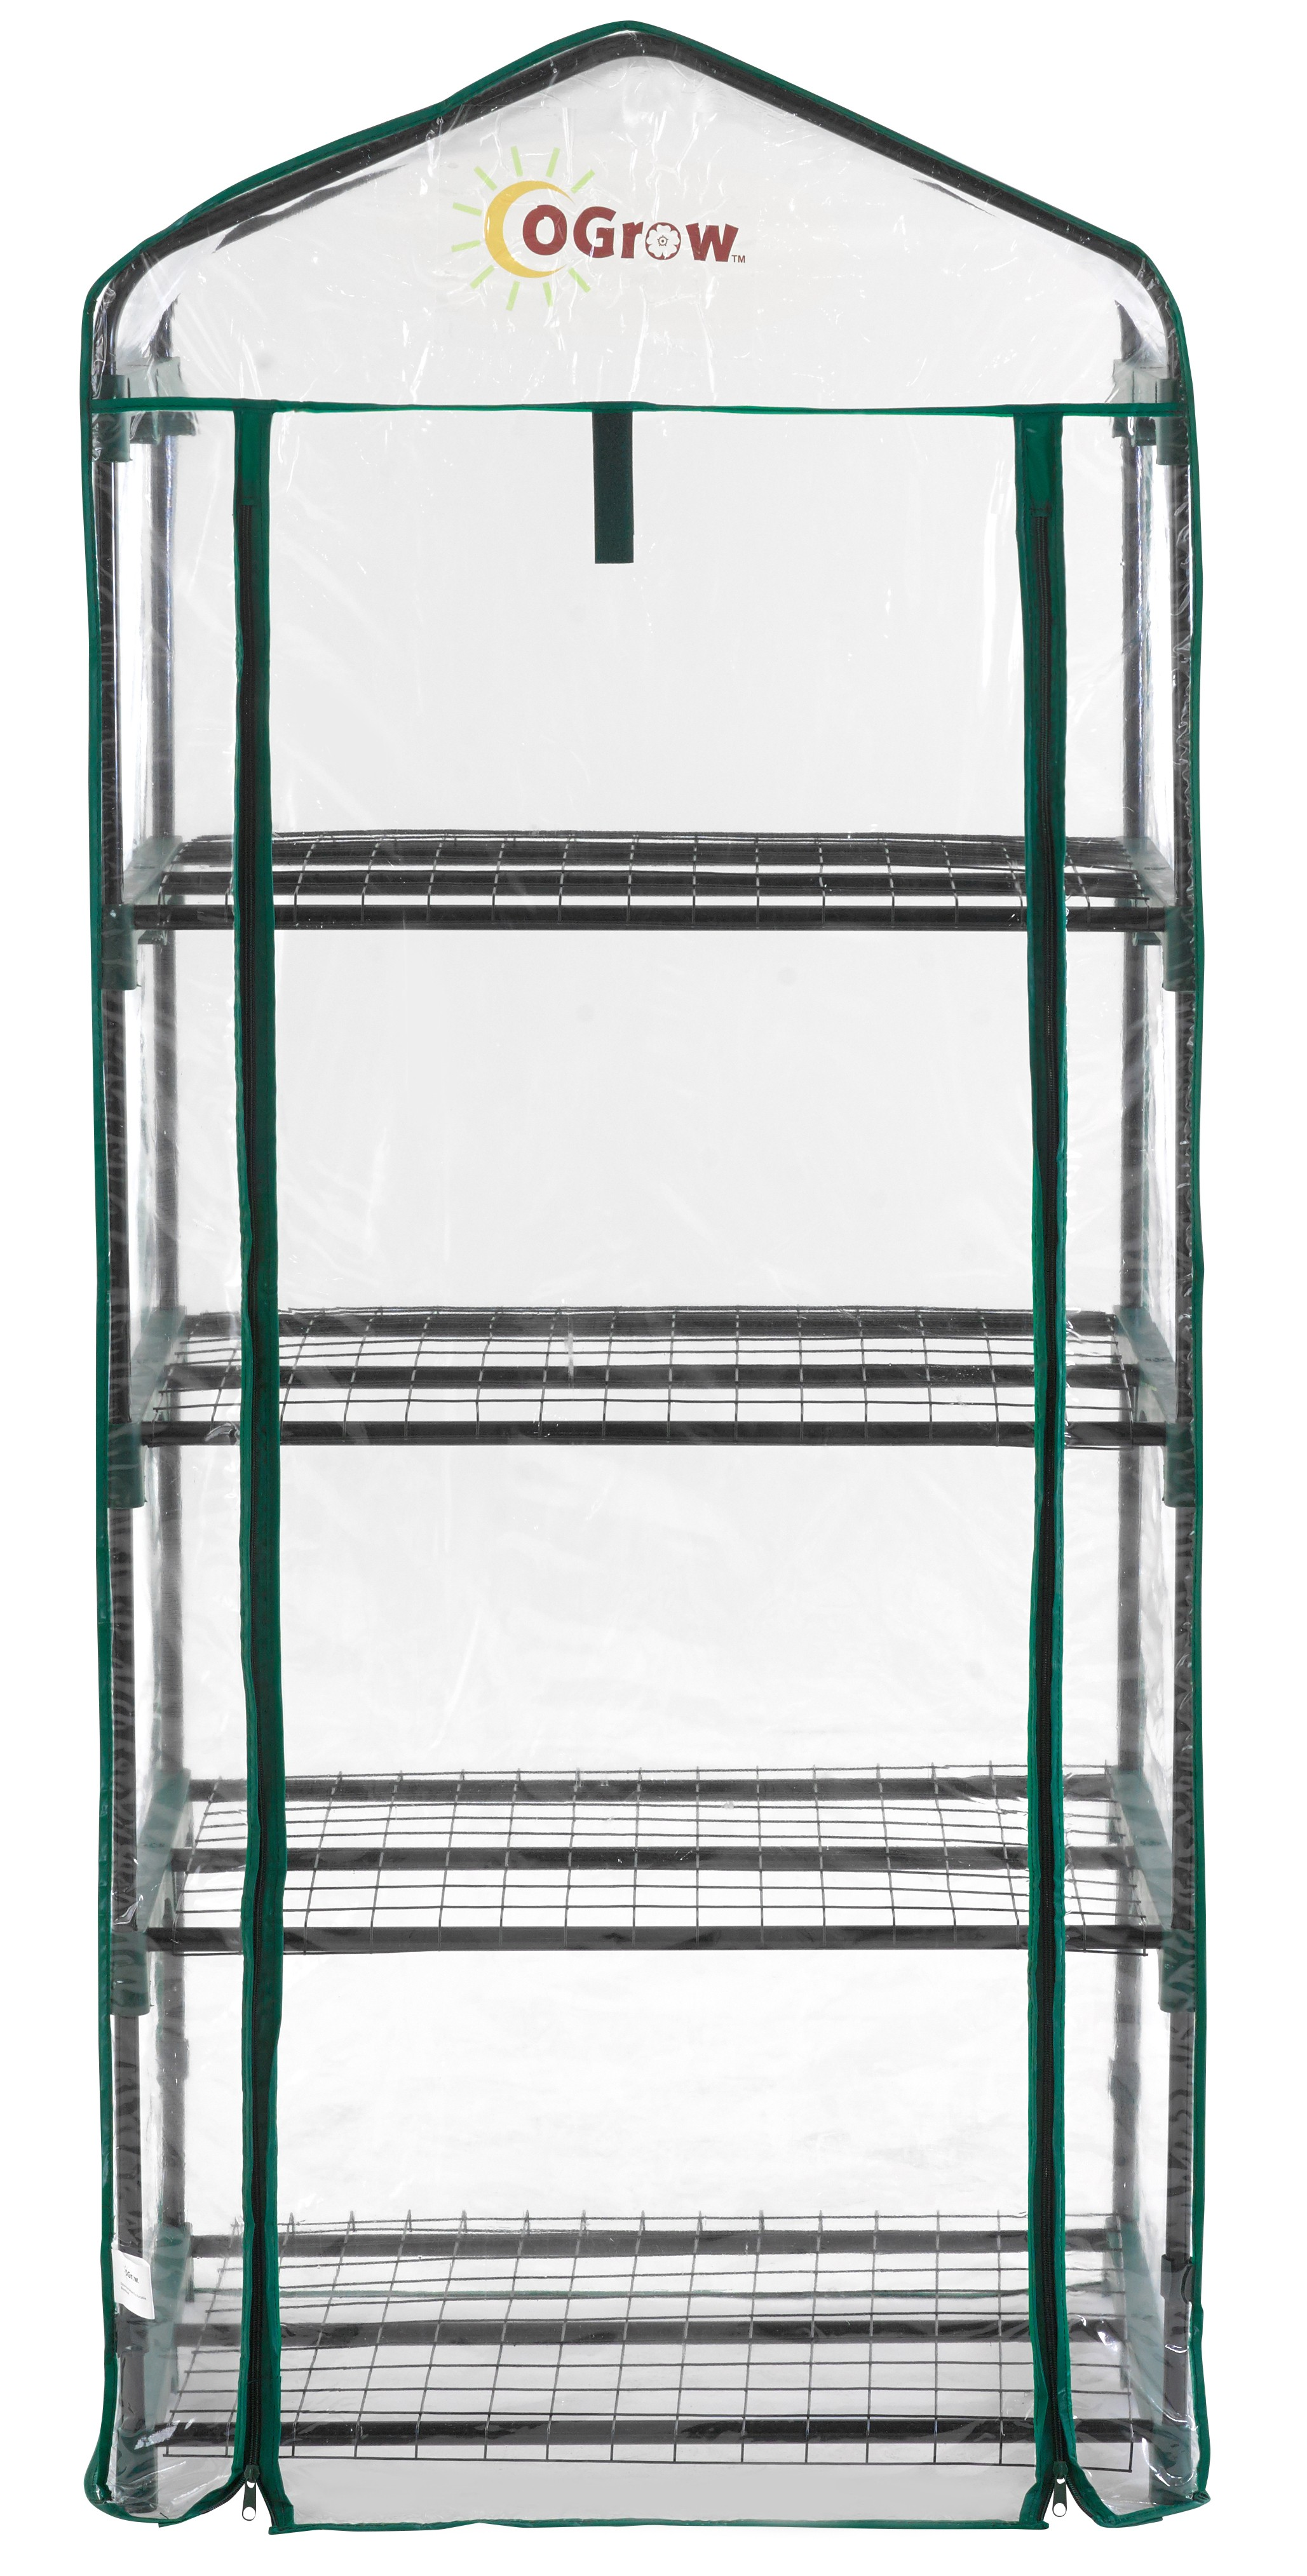 "Ogrow Small Portable Greenhouse - 4 Tier Mini PVC Garden Greenhouse - 62"" H x 27"" W x 19"" D - Clear"